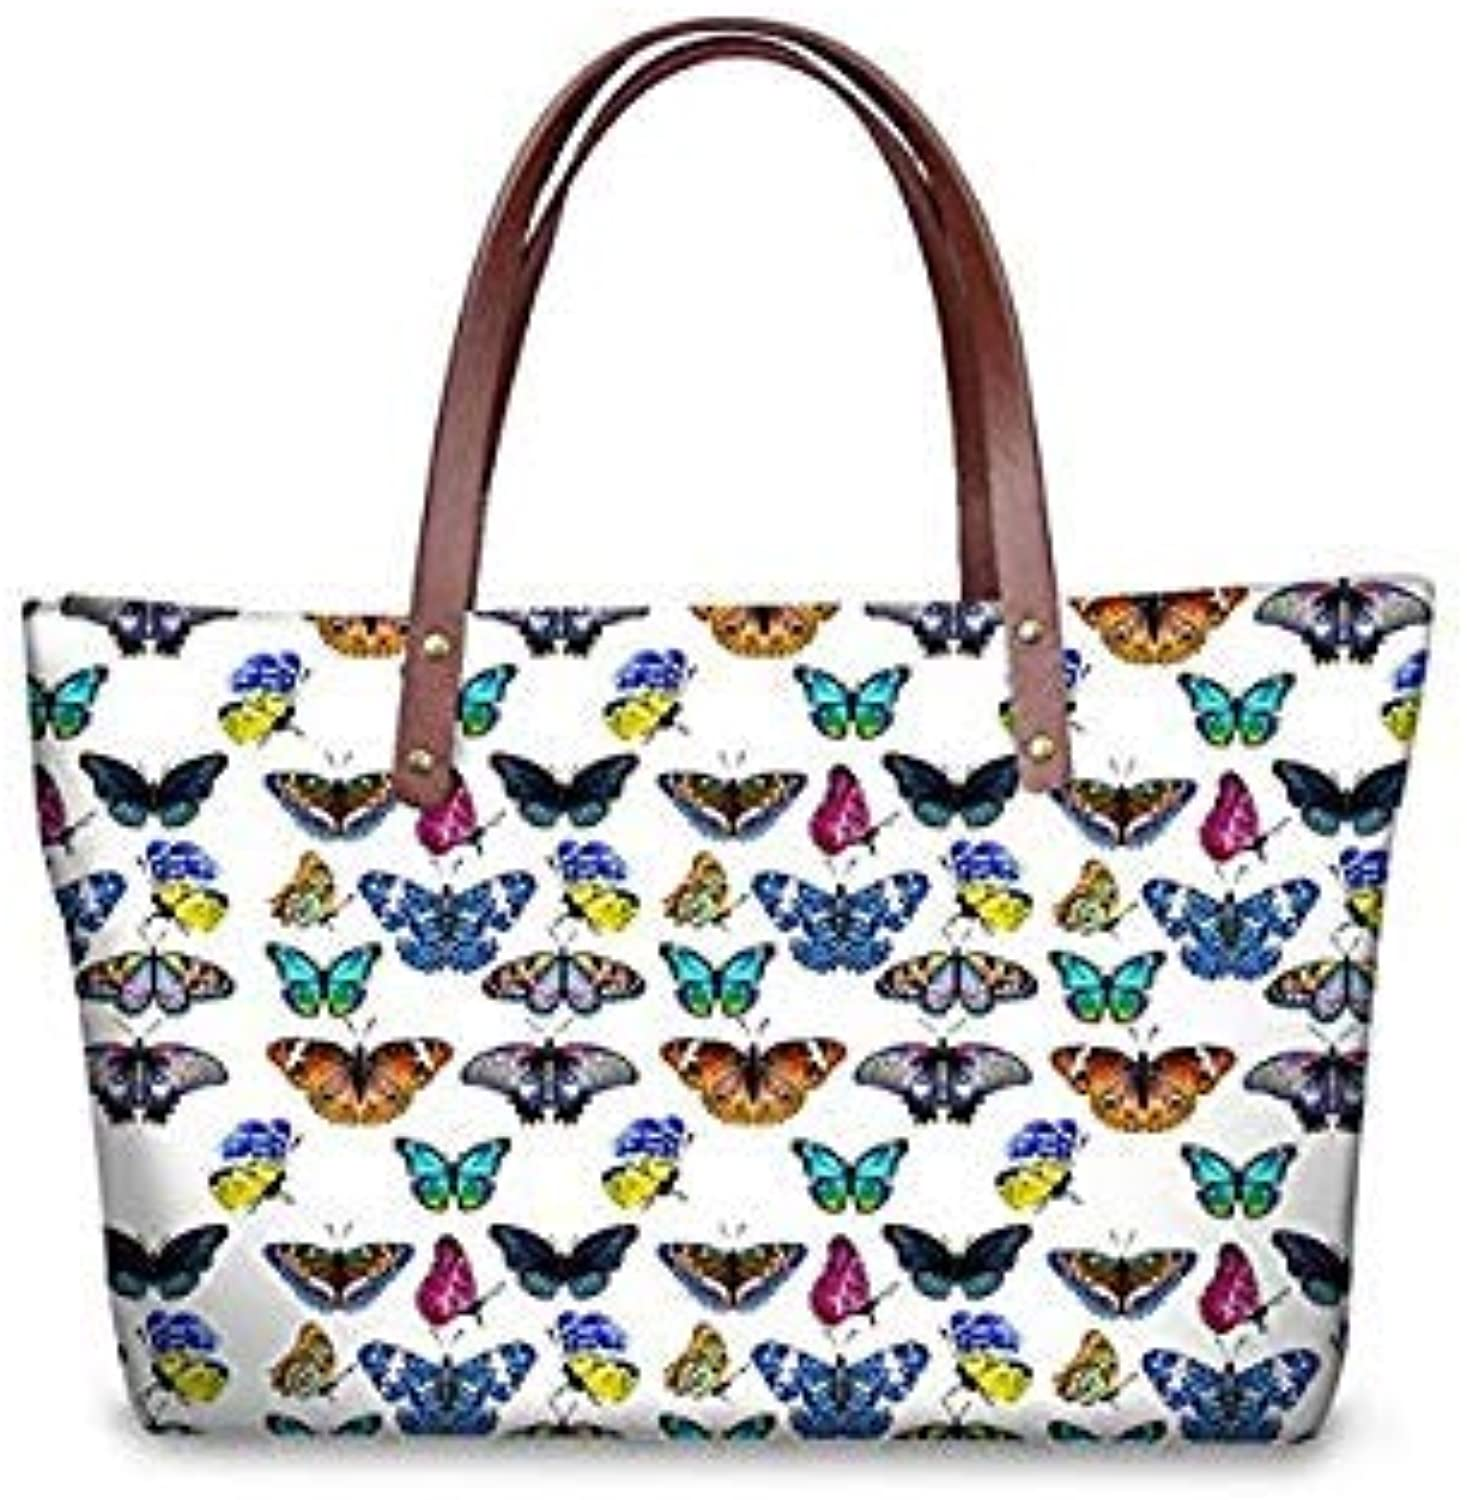 Bloomerang WHOSEPET Women Handbags Cartoon Cat Print Shoulder Messenger Bag Ladies Large Tote Bag Top-Handle Bags for Shopping Female Bolsa color CC3118AL